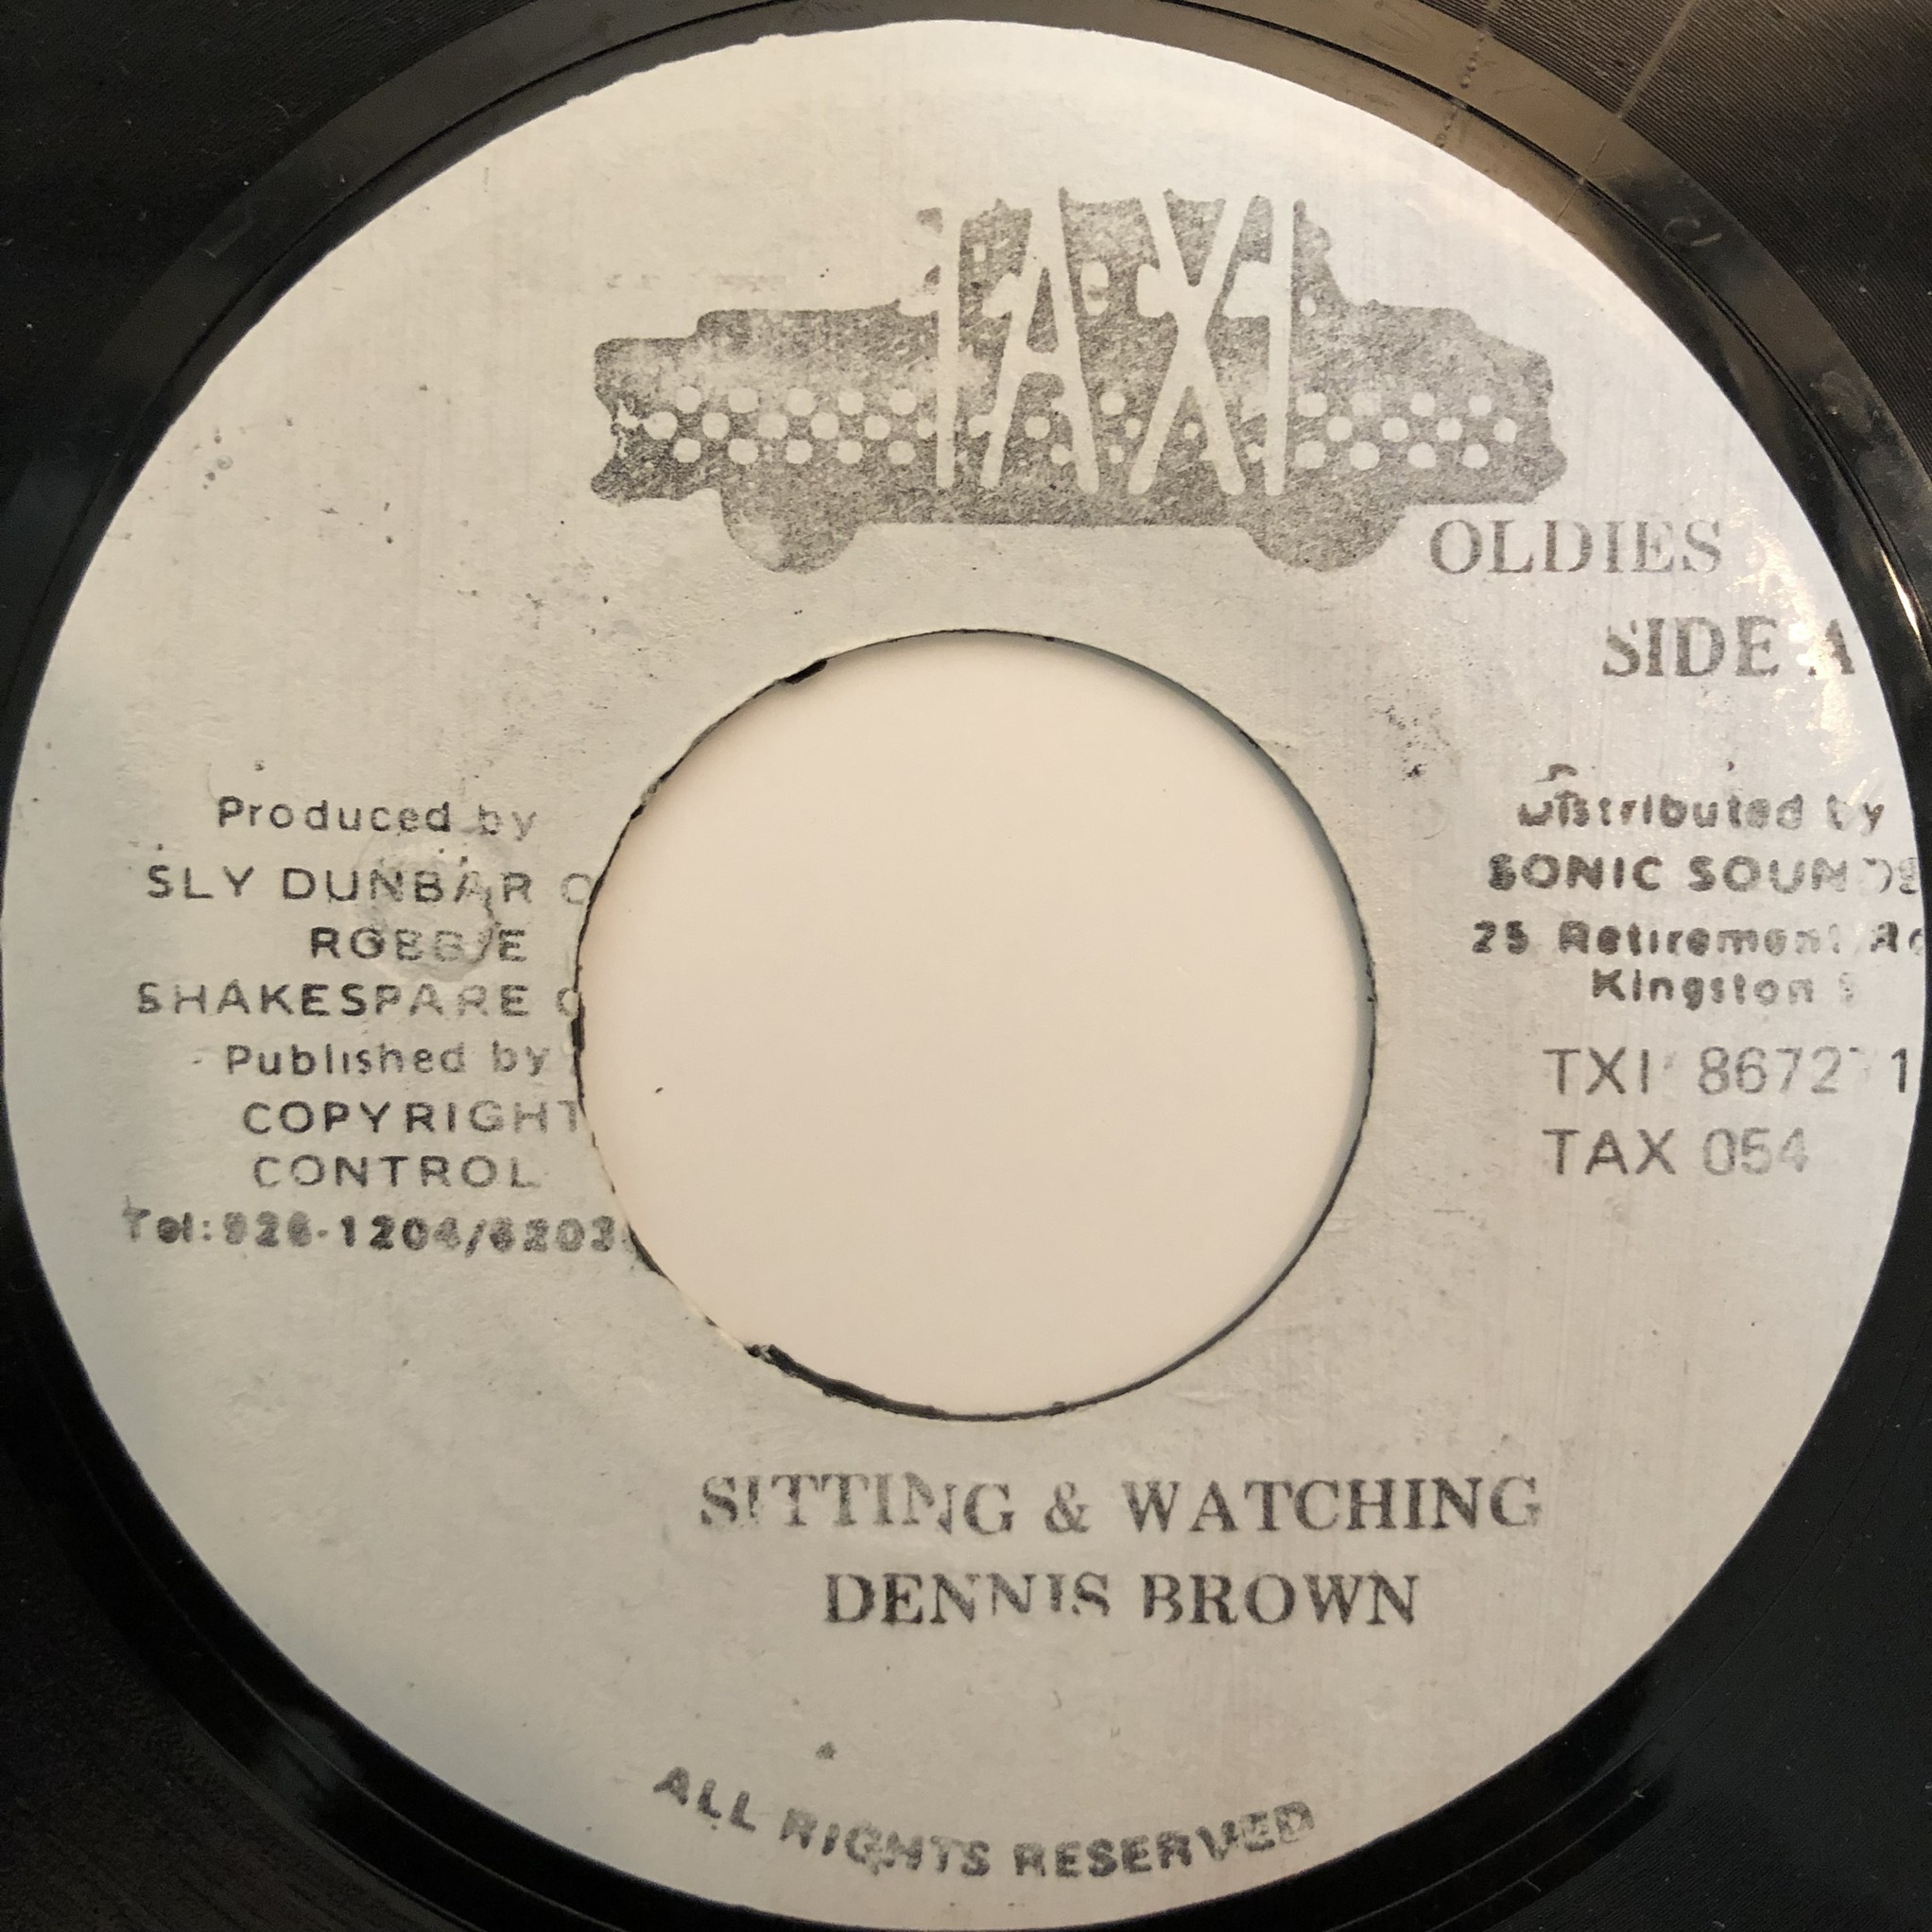 Dennis Brown - Sitting And Watching【7-20373】